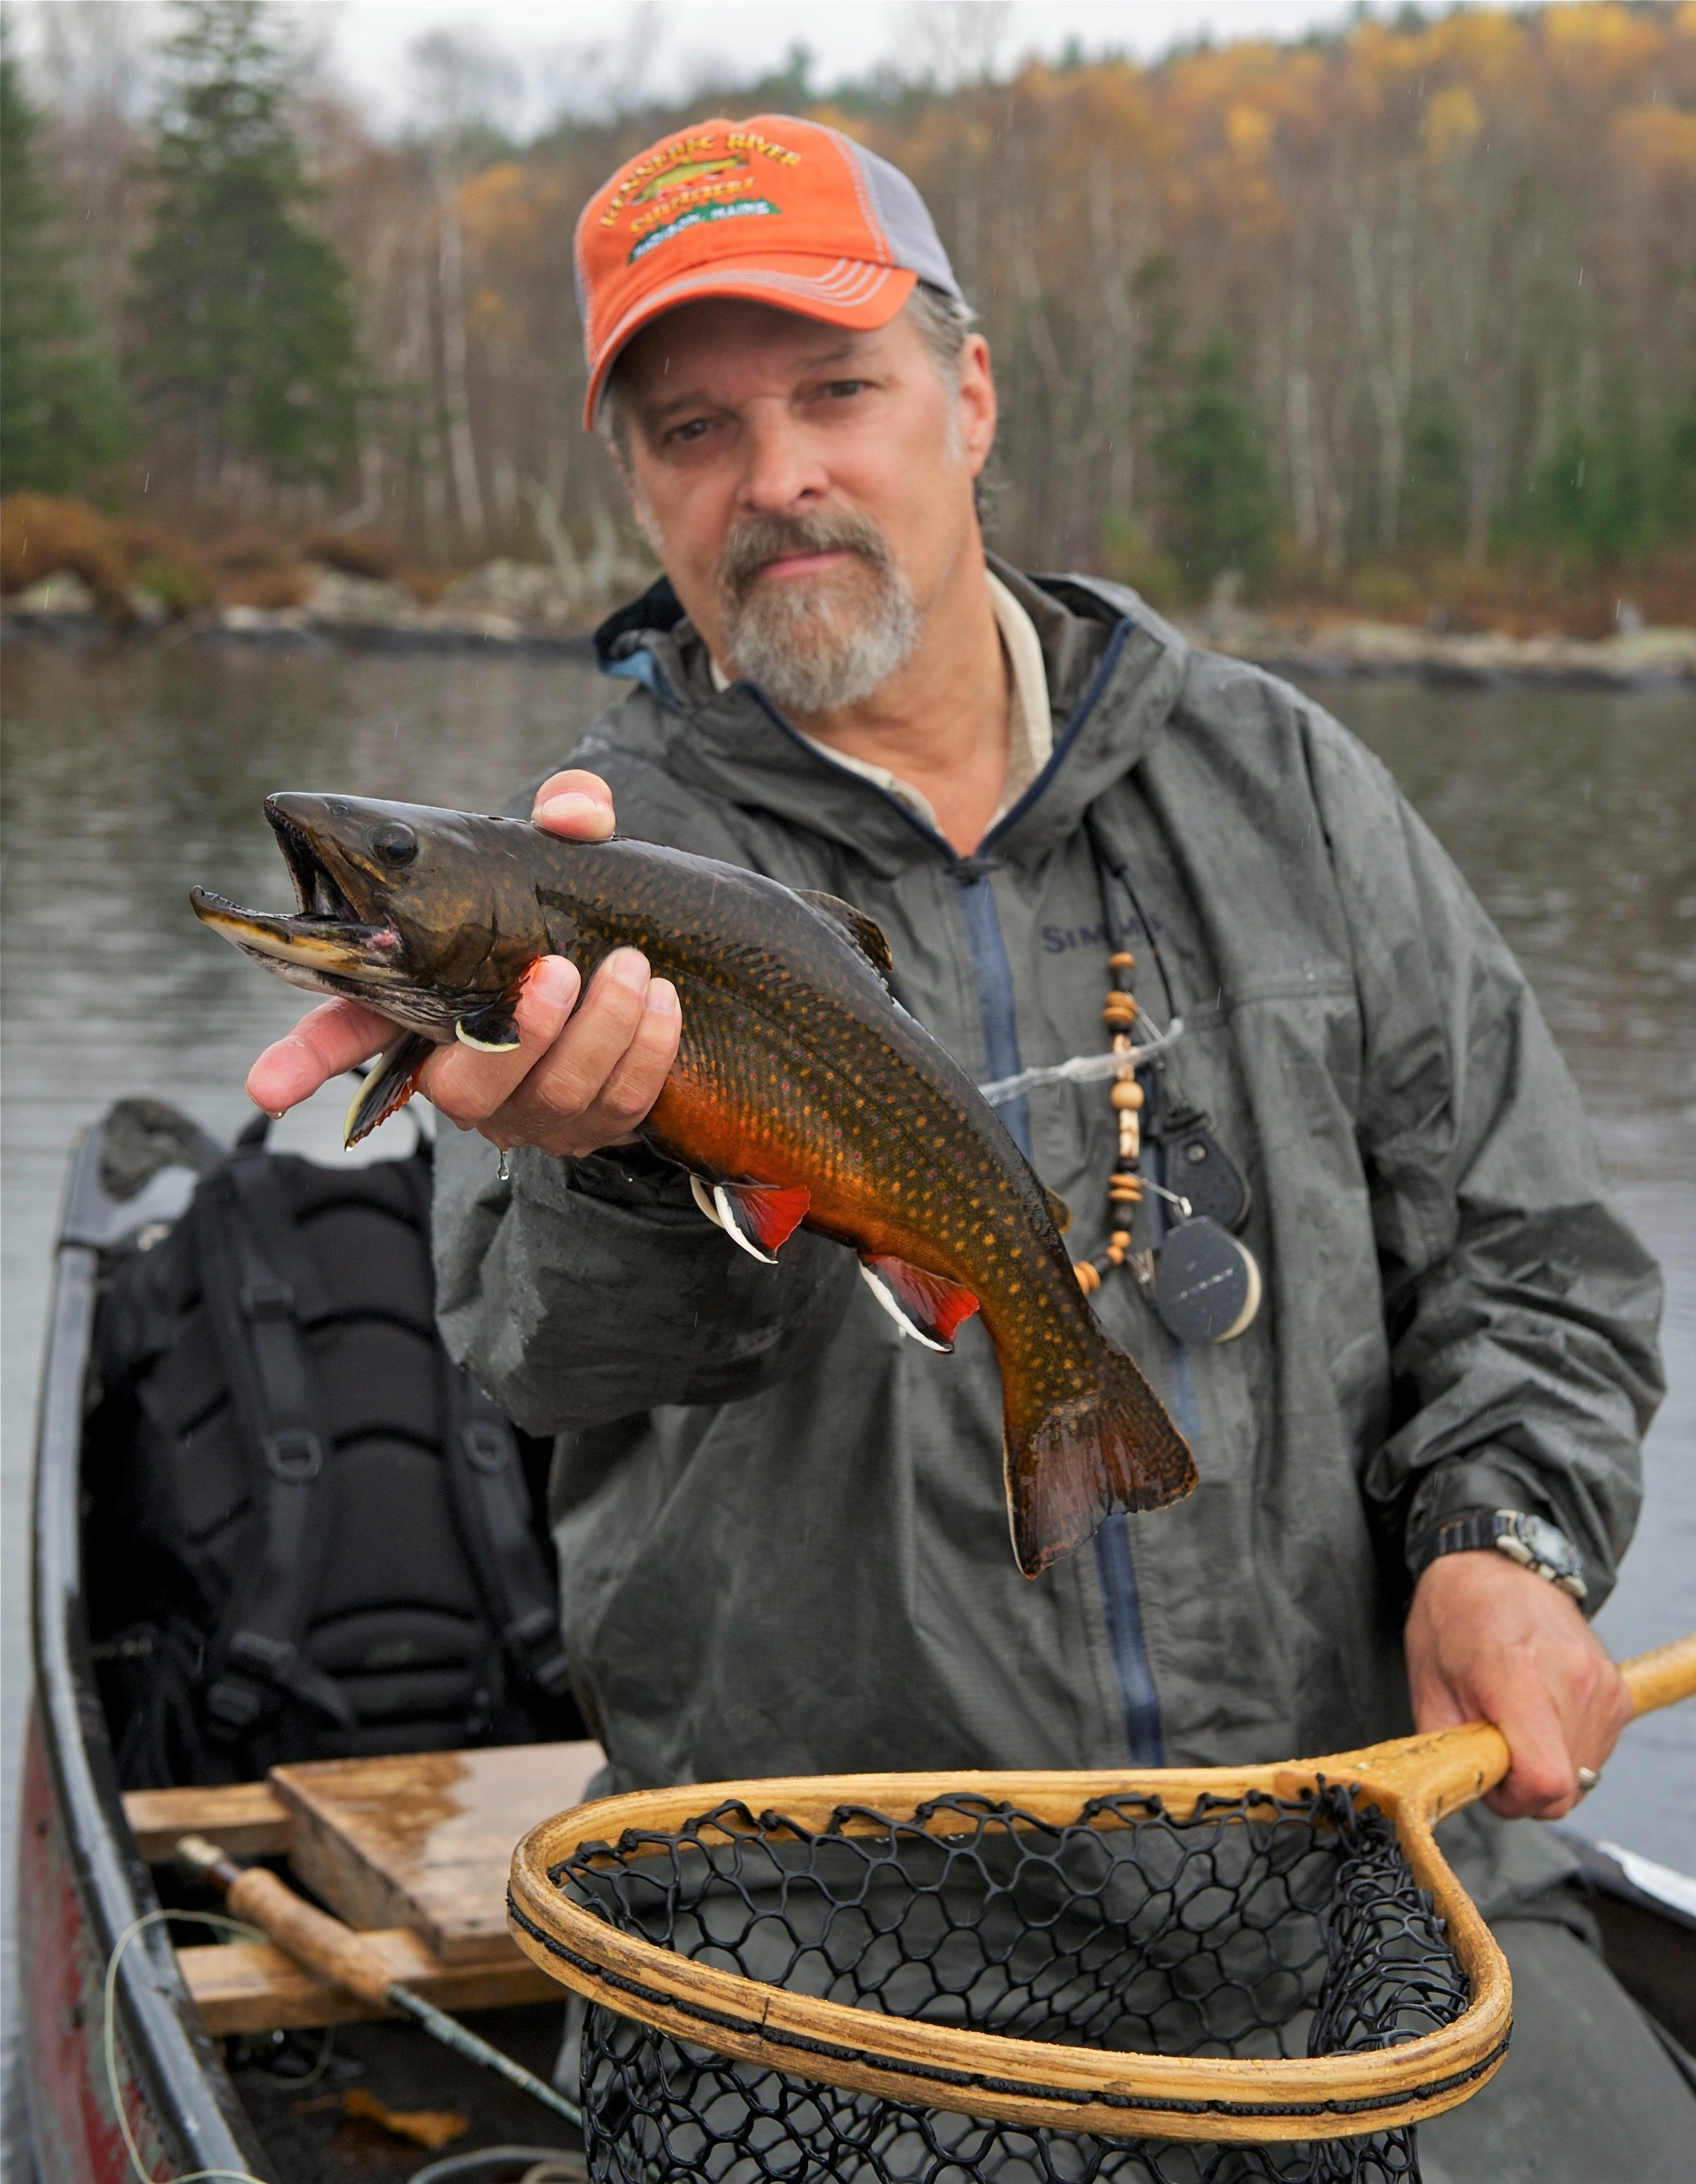 Founding member Bob Mallard with ME pond-dwelling brook trout